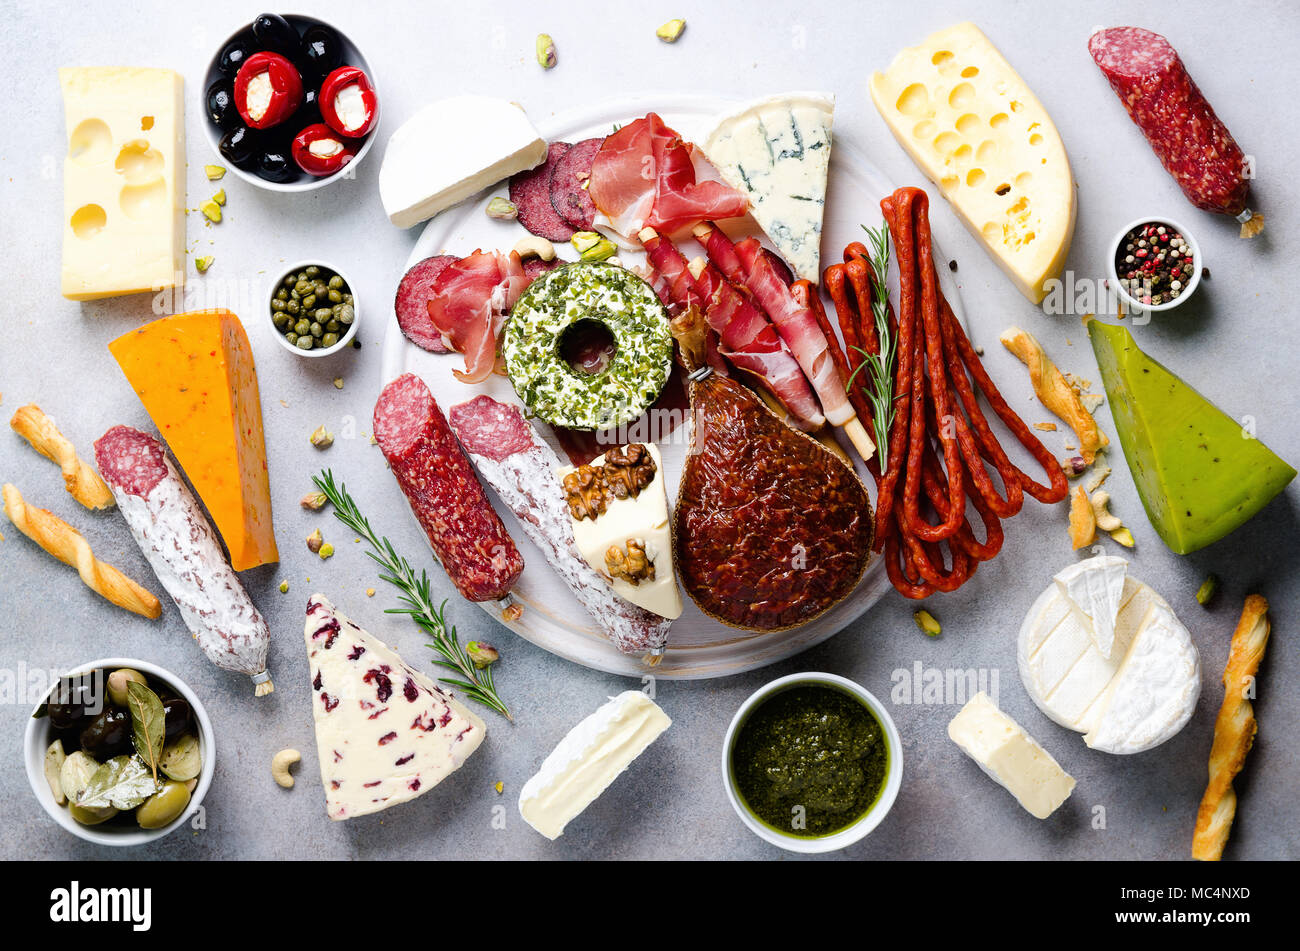 Traditional italian antipasto, cutting board with salami, cold smoked meat, prosciutto, ham, cheeses, olives, capers on grey background. Cheese and meat appetizer. Top view, copy space, flat lay - Stock Image